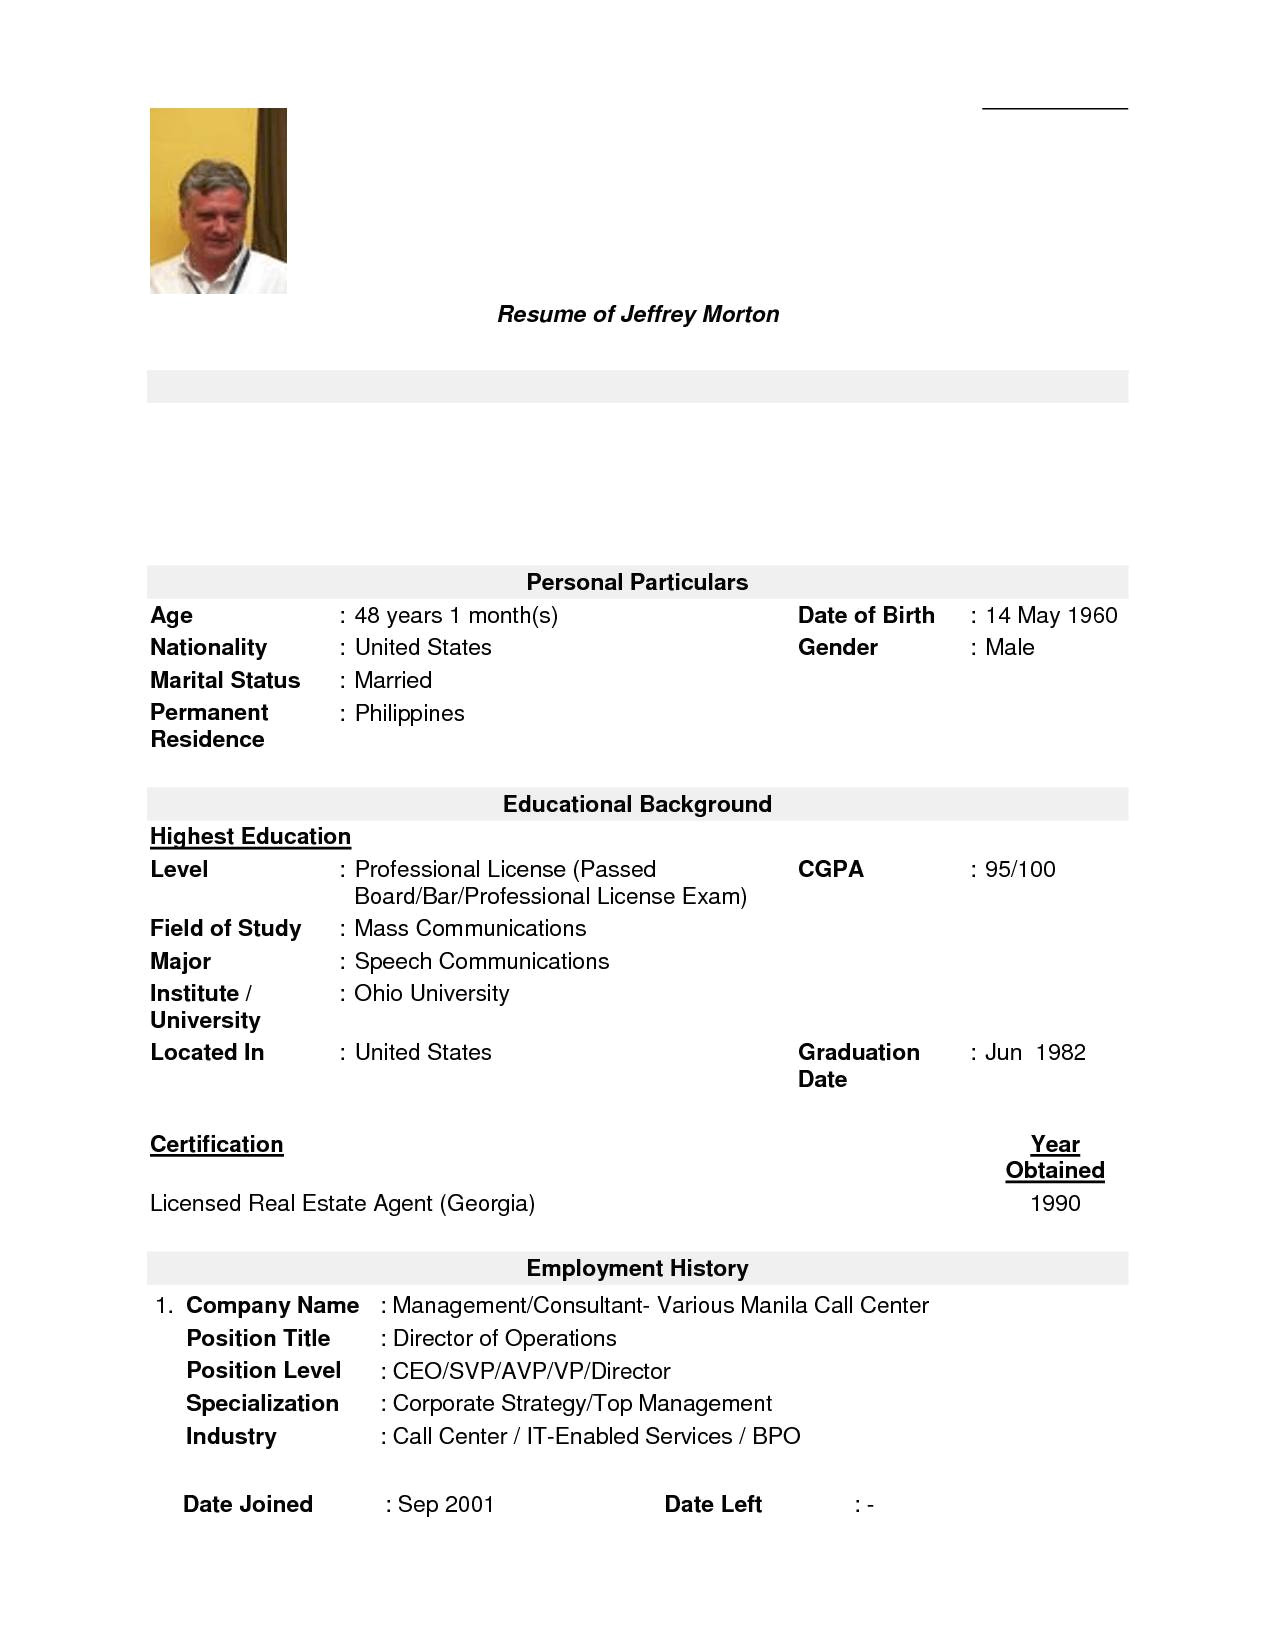 personal background sample resume fresh sample resume for call center agent without experience philippines